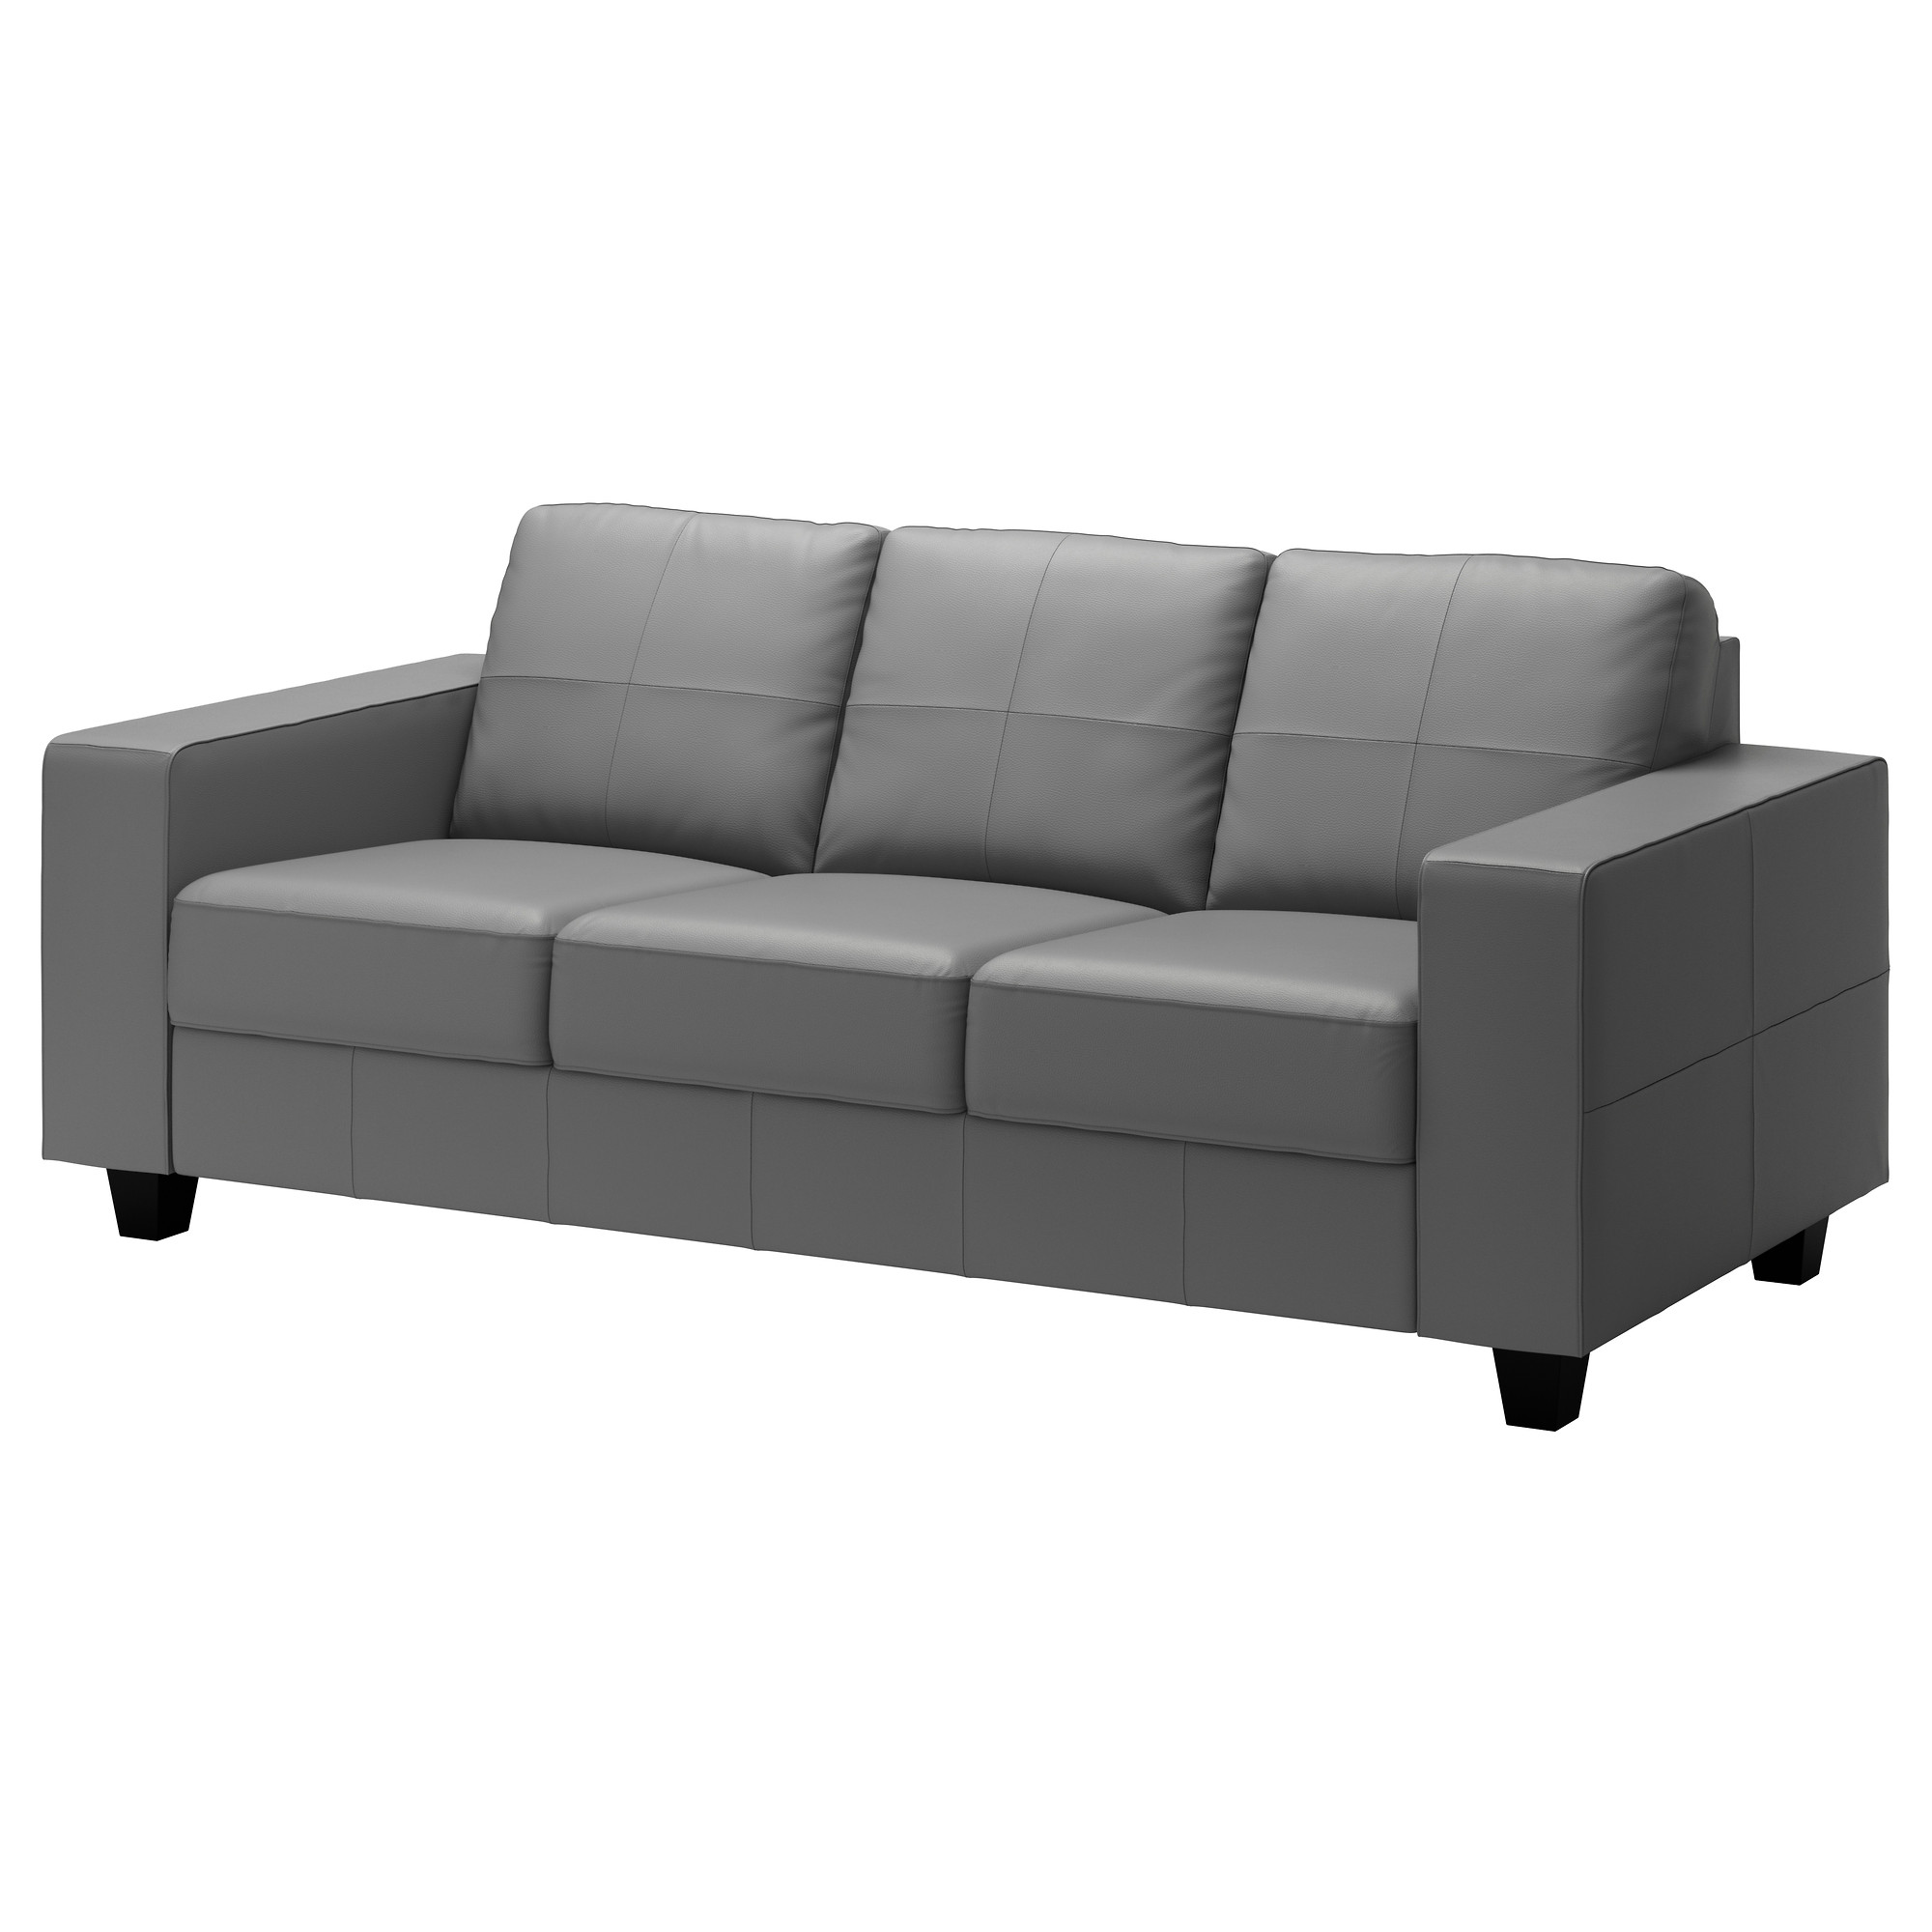 sleeper sofa mattress sleeper sofas ikea sleeper sofa ikea ikea living room sets sleeper sectional sofa ikea ikea sleeper sofa mattress ikea futons futon couches ikea ektorp sleeper sofa i